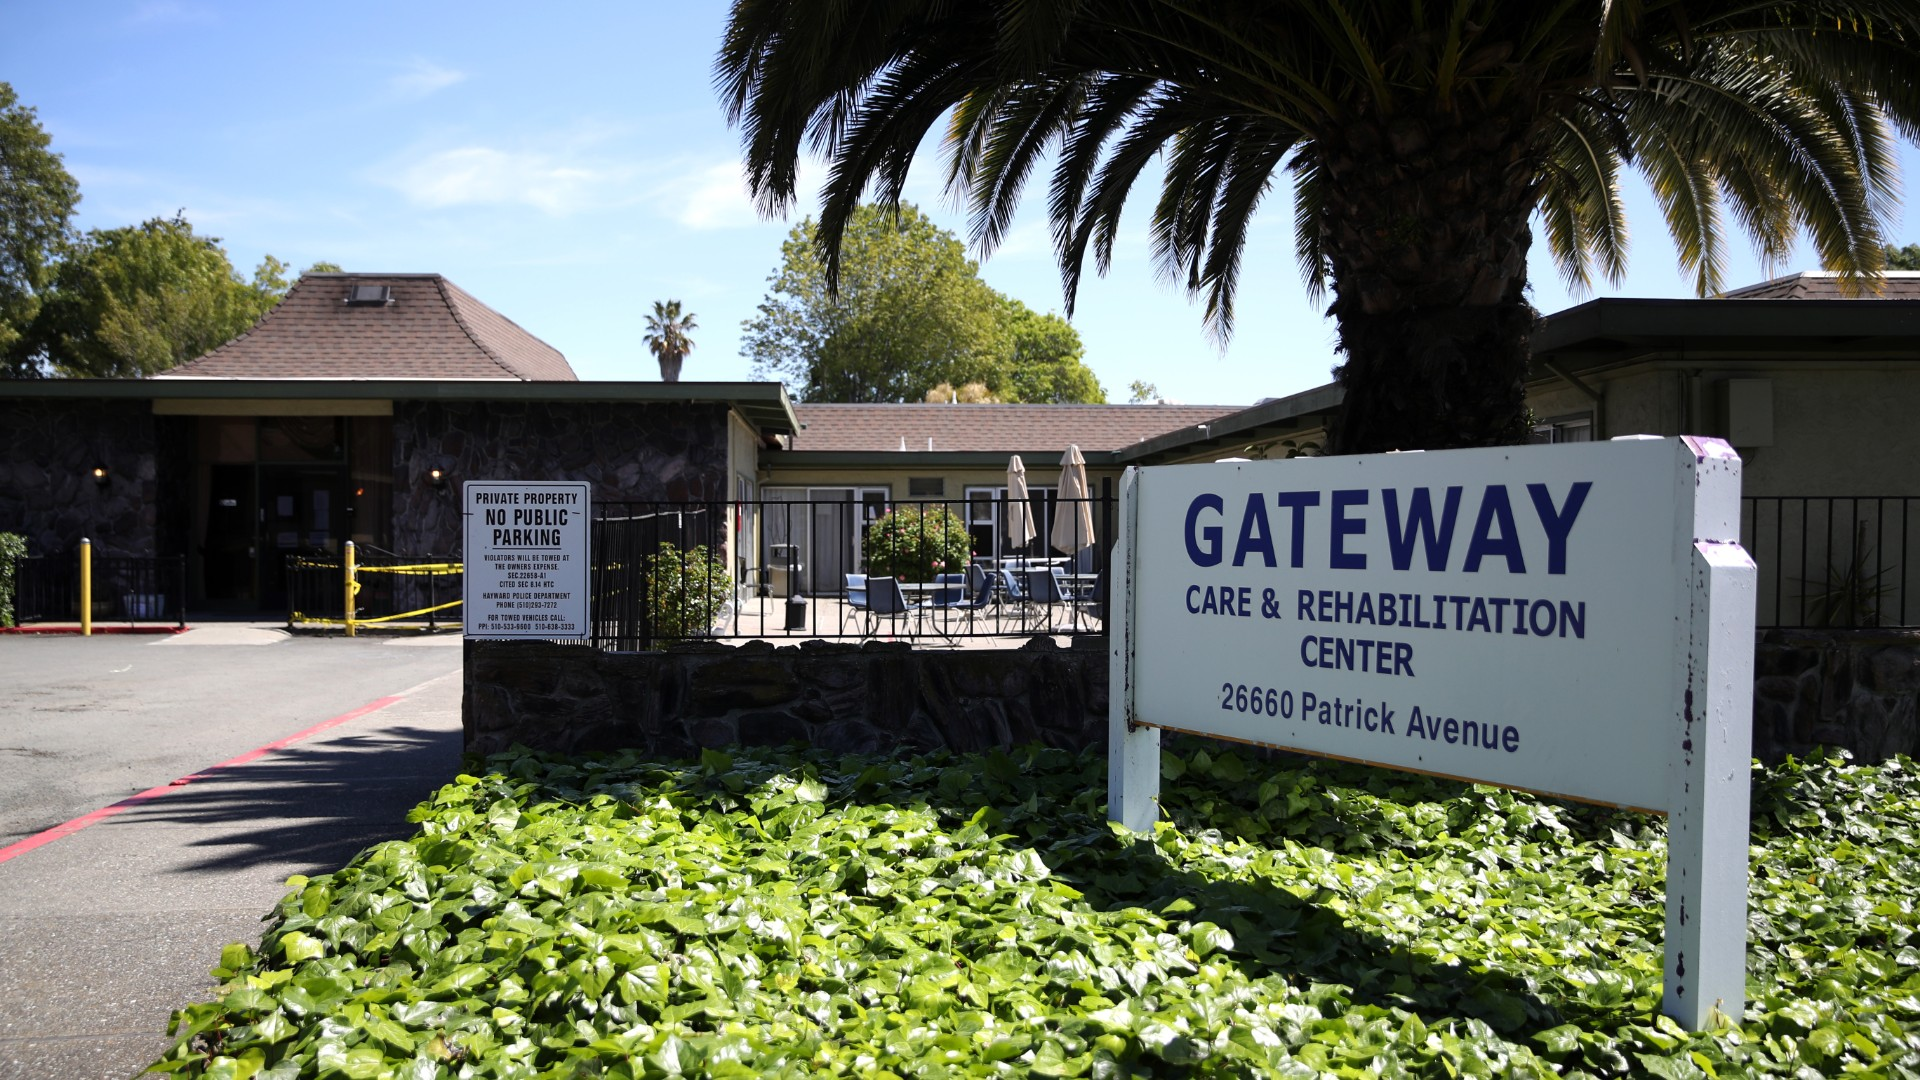 A view of the Gateway Care and Rehabilitation Center on April 14, 2020 in Hayward, California. (Justin Sullivan/Getty Images)